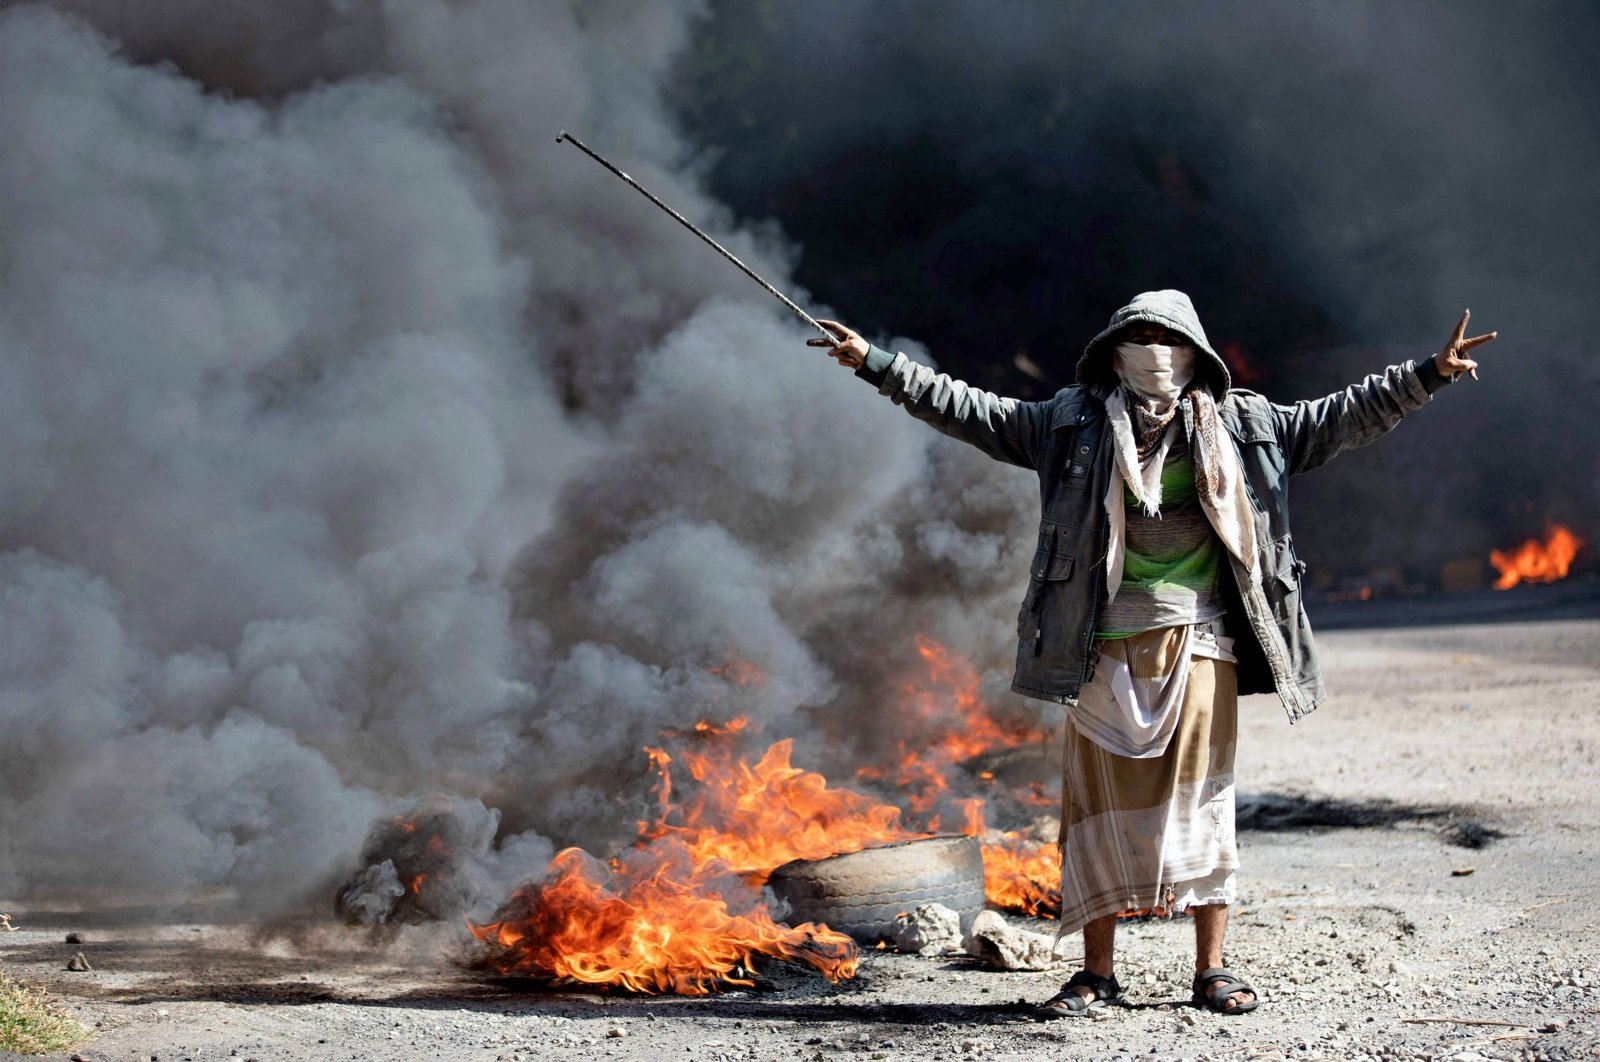 A Yemeni man flashes the V for victory sign next to burning tires during protests calling for the removal of the Saudi-backed coalition government and deteriorating economic and living conditions, in Yemen's third city of Taez on Sept. 27, 2021. (AFP Photo)